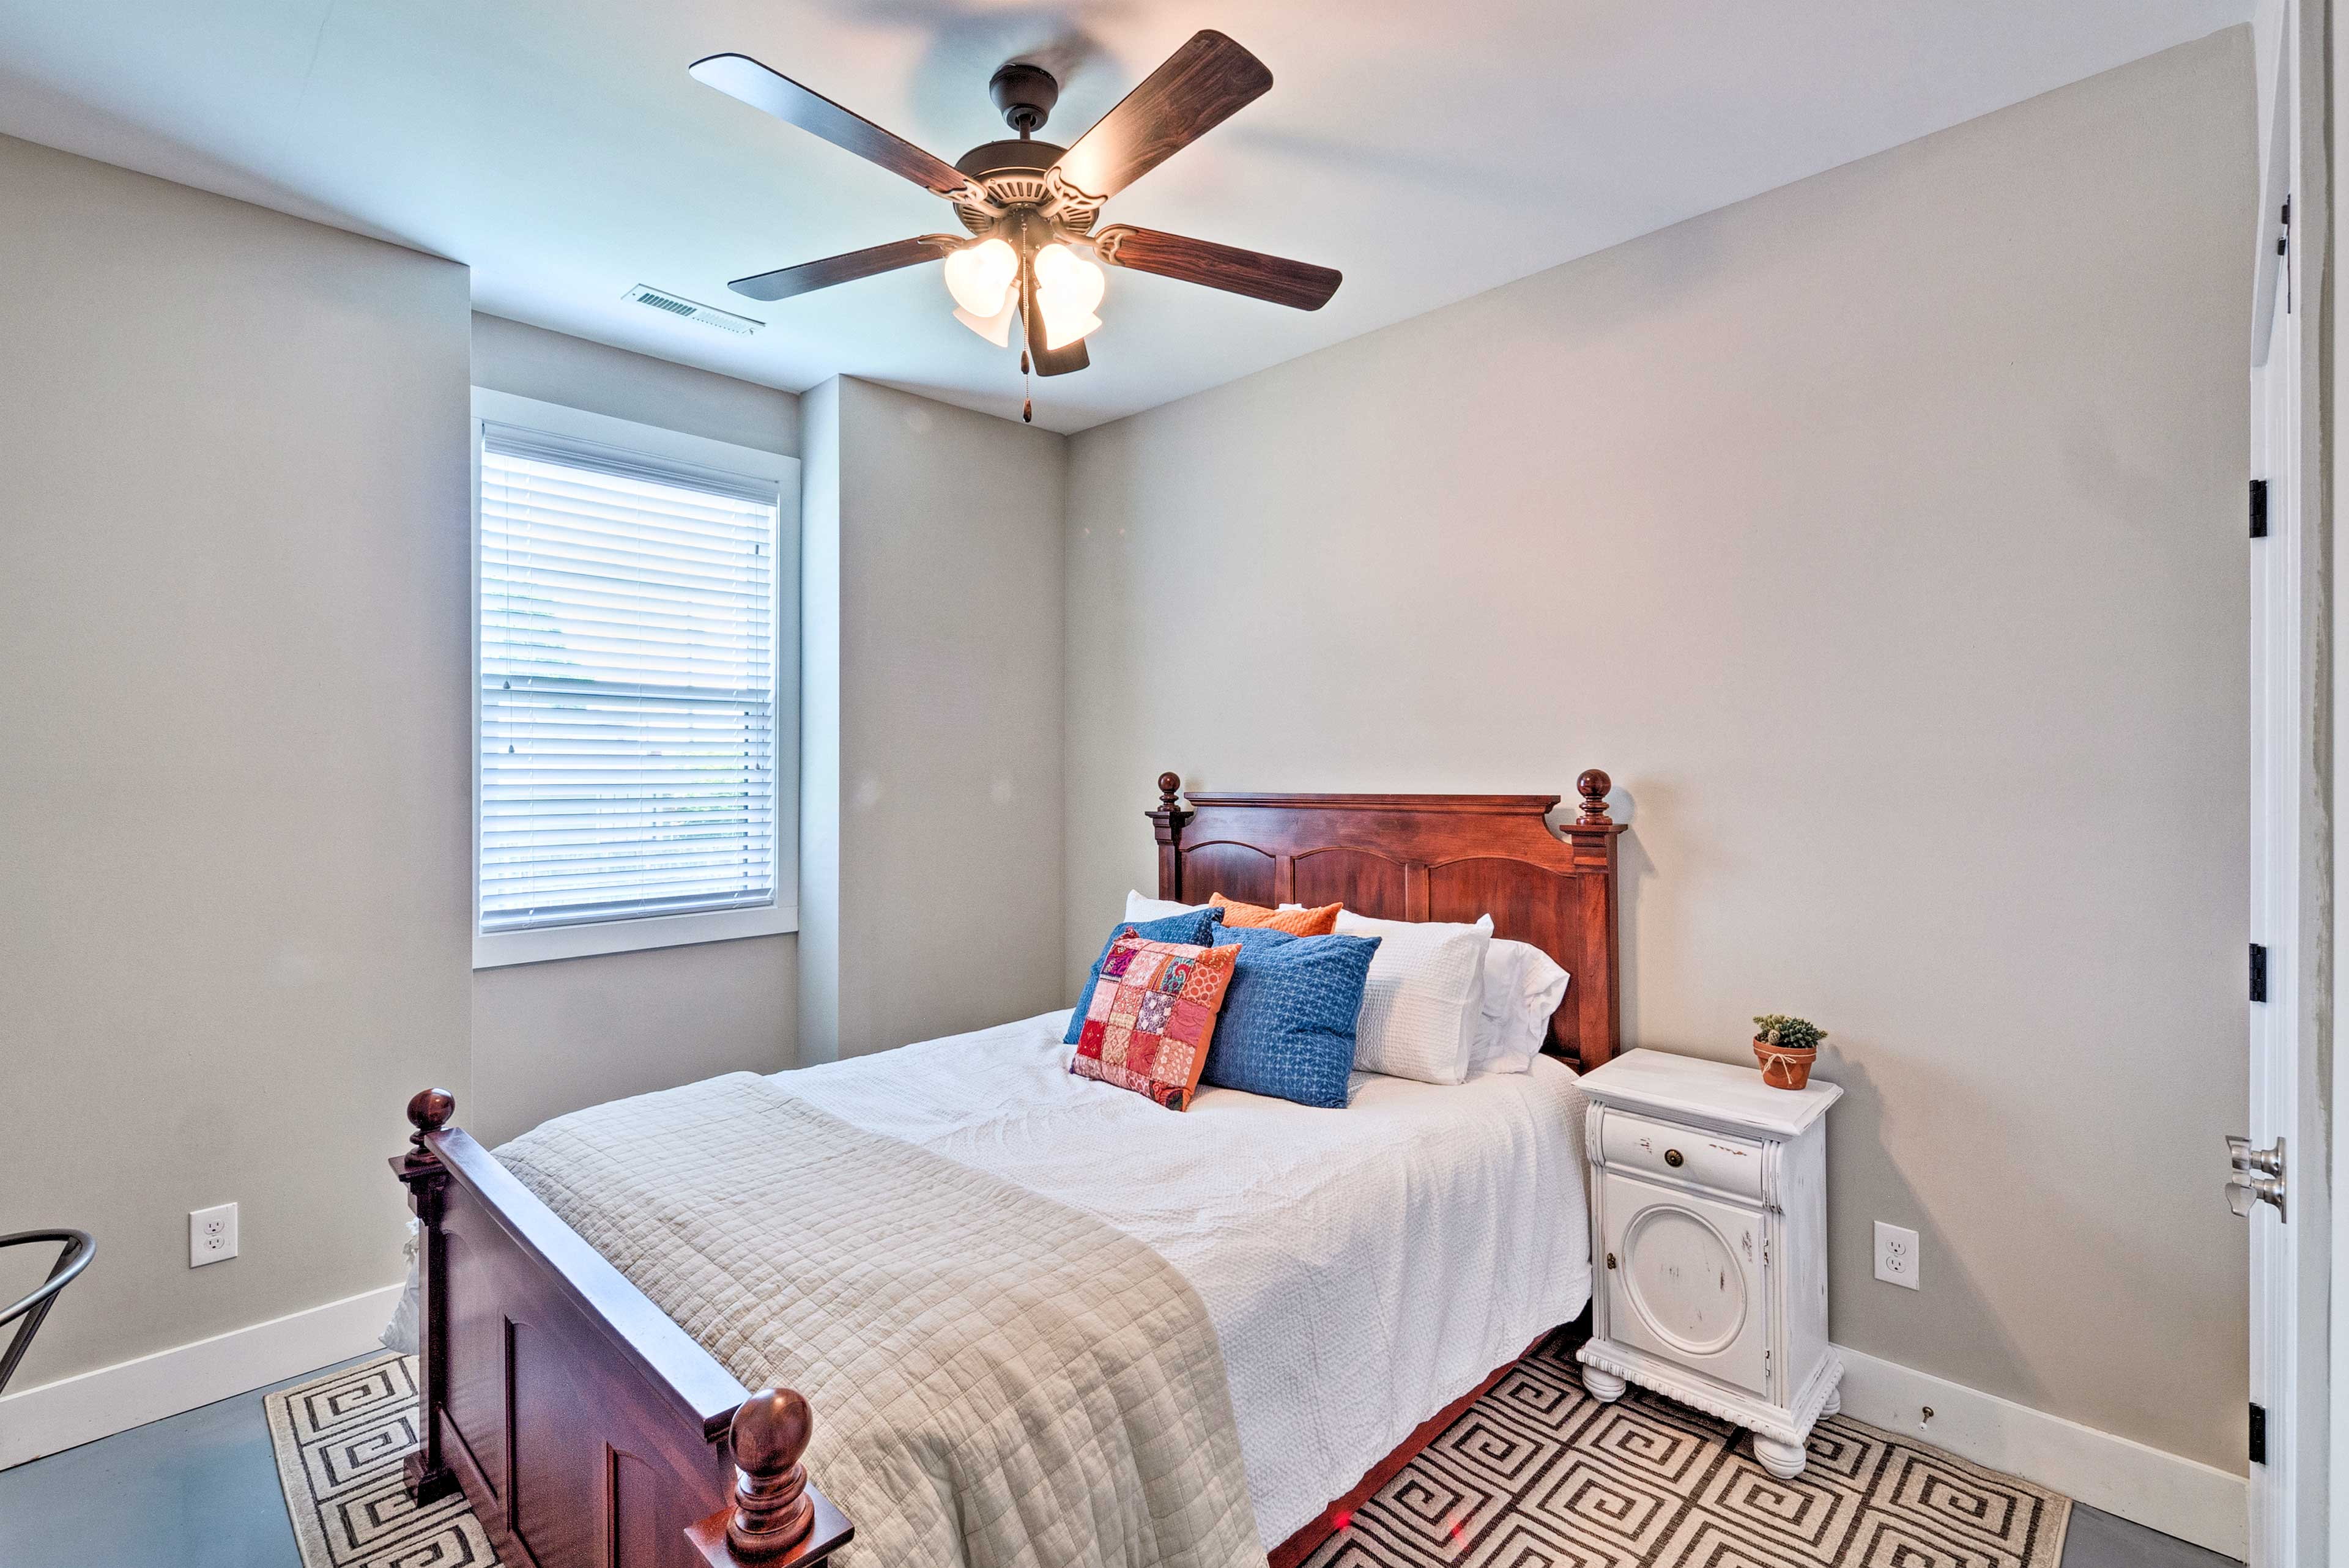 The third bedroom offers a full-sized bed.